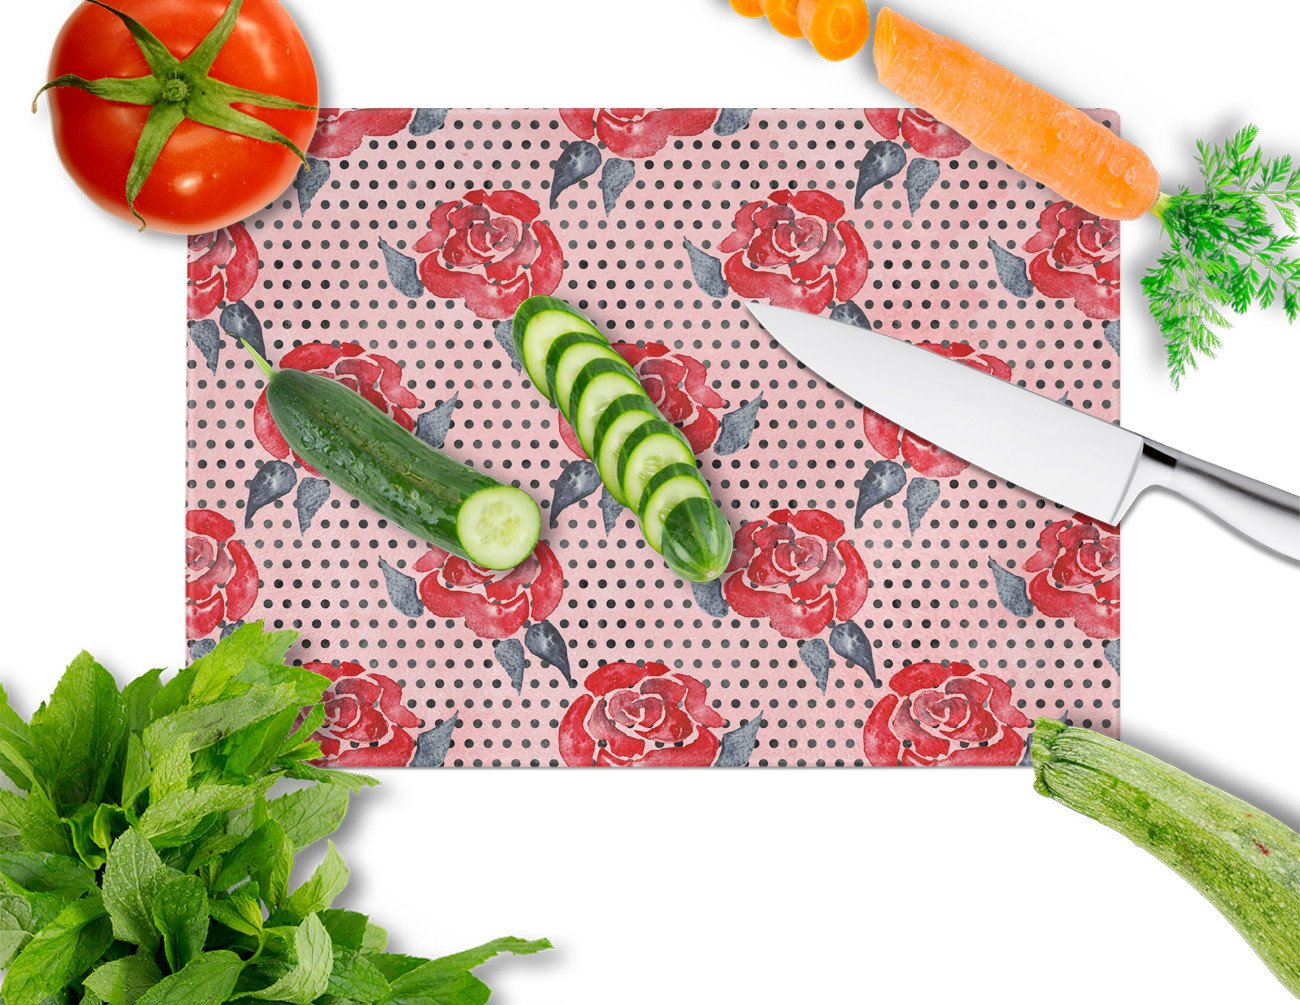 Watercolor Red Roses and Polkadots Glass Cutting Board Large BB7513LCB by Caroline's Treasures